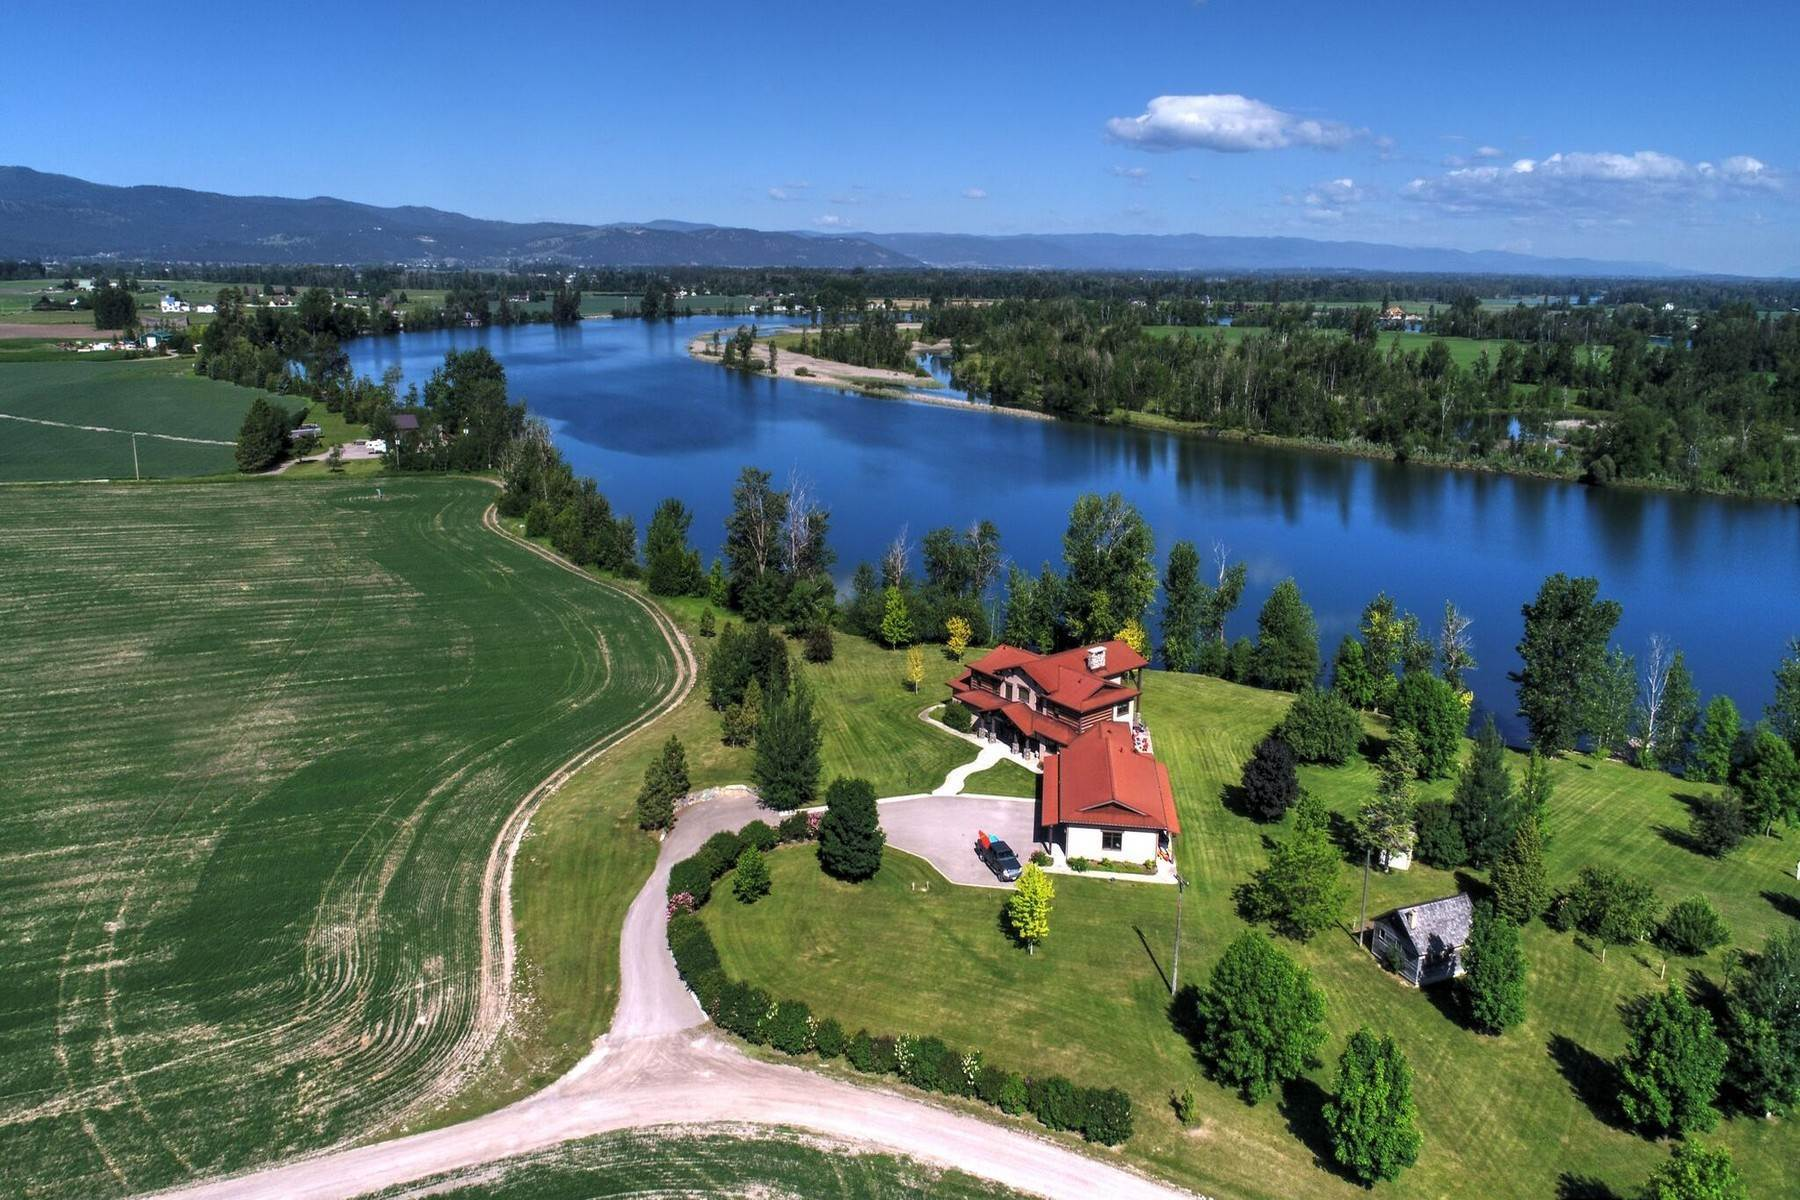 Single Family Homes for Sale at 2239 Lower Valley Road Kalispell, Montana 59901 United States